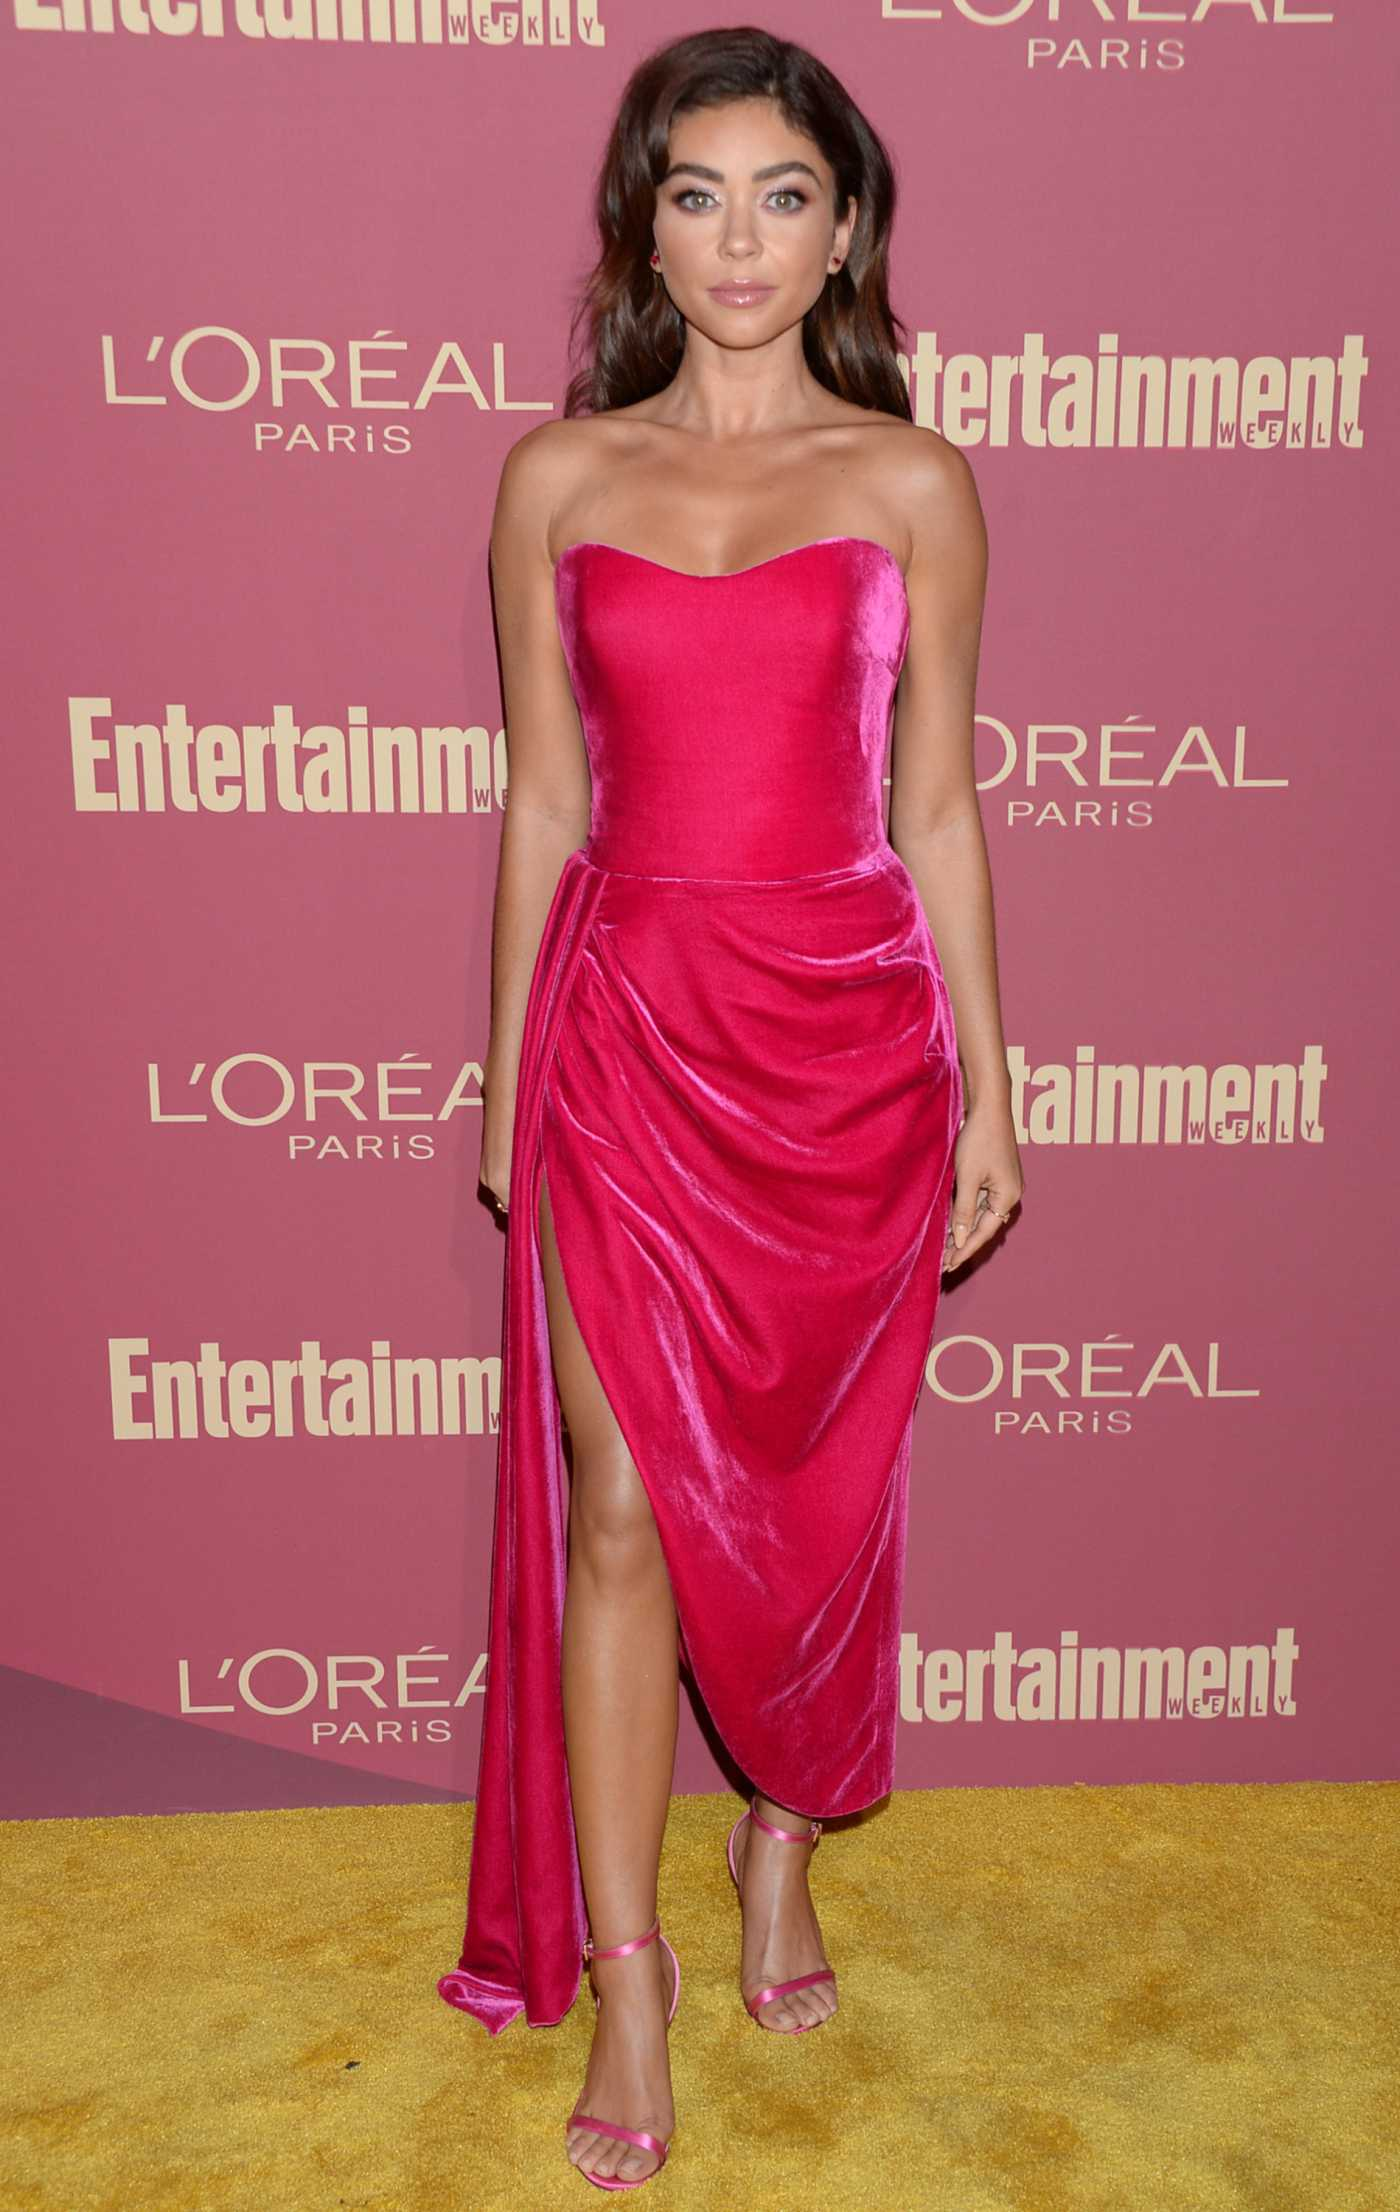 Sarah Hyland Attends 2019 Entertainment Weekly Pre-Emmy Party in LA 09/20/2019